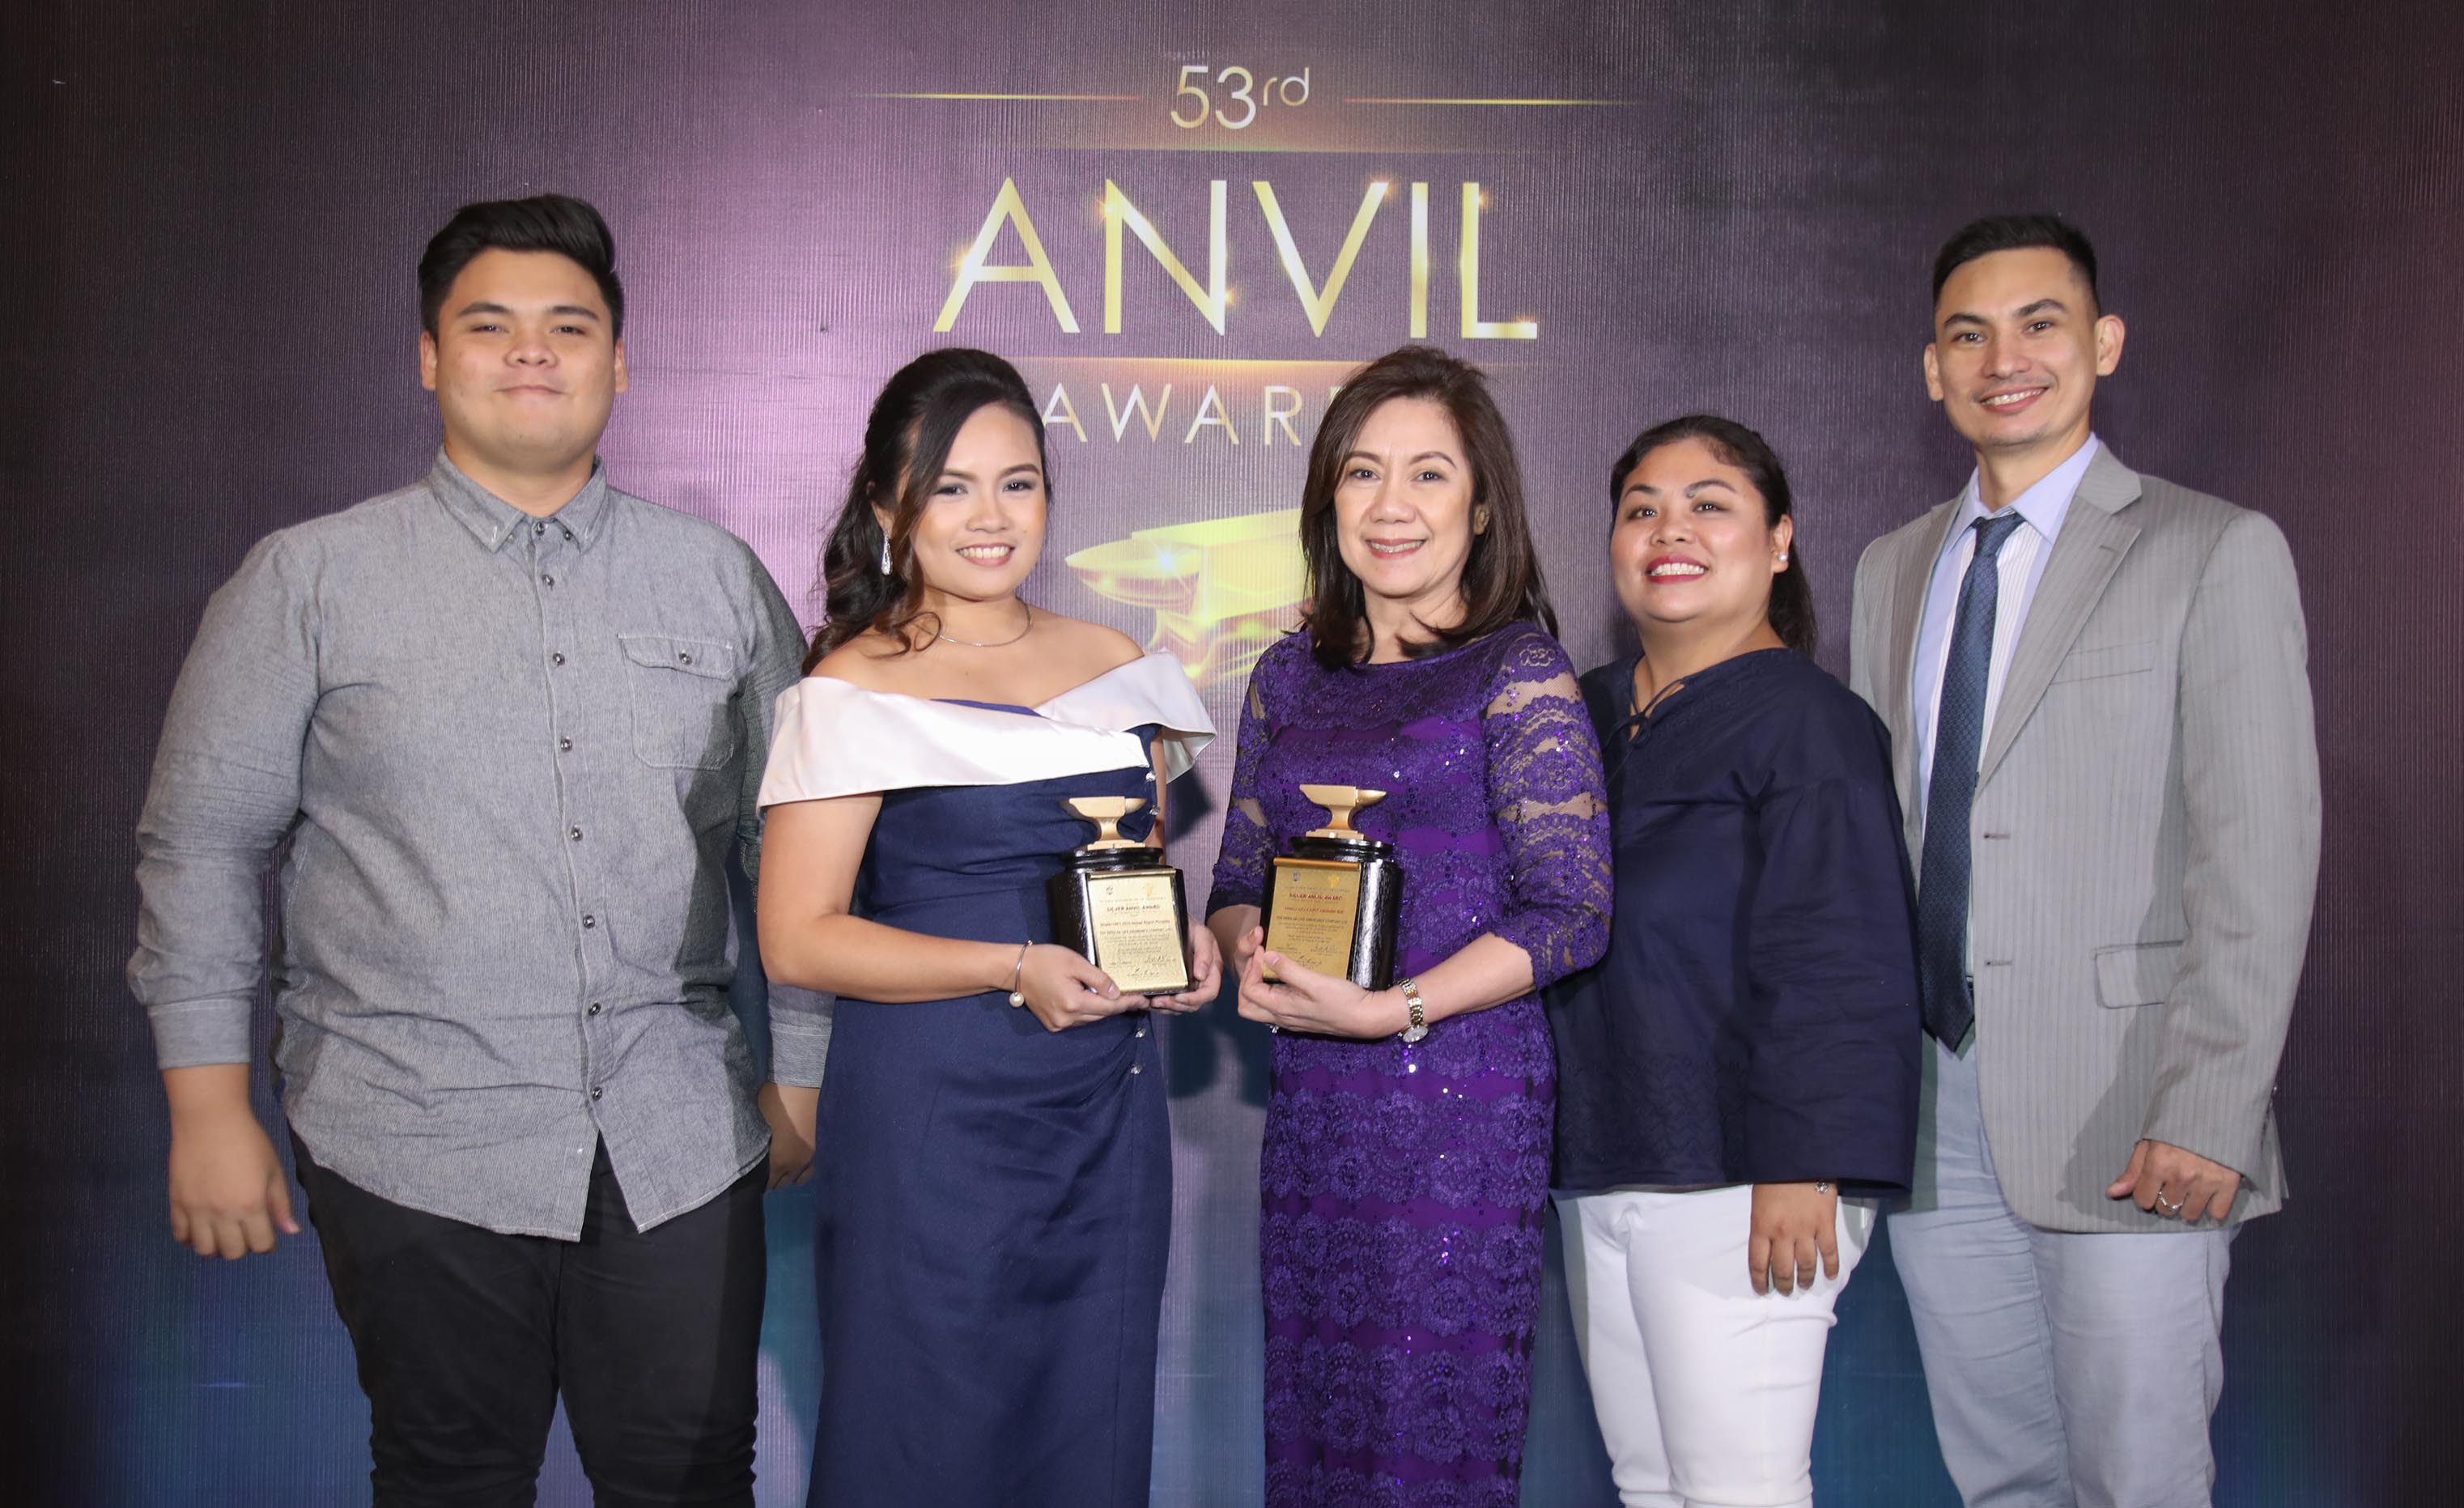 Insular%20life%20wins%20anvil%20awards